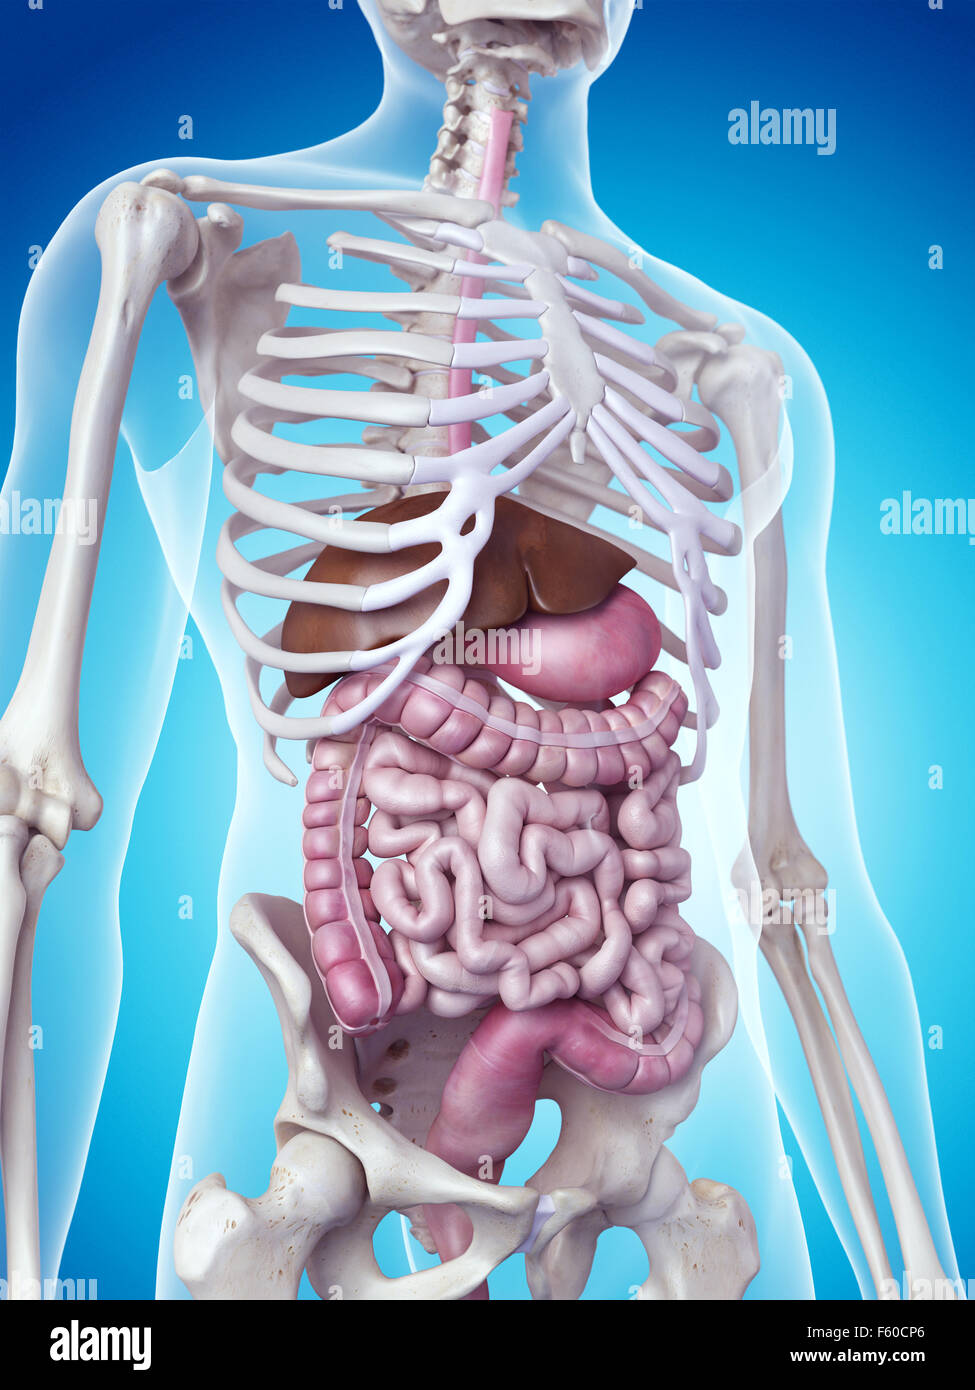 hight resolution of medically accurate illustration of the digestive system stock image